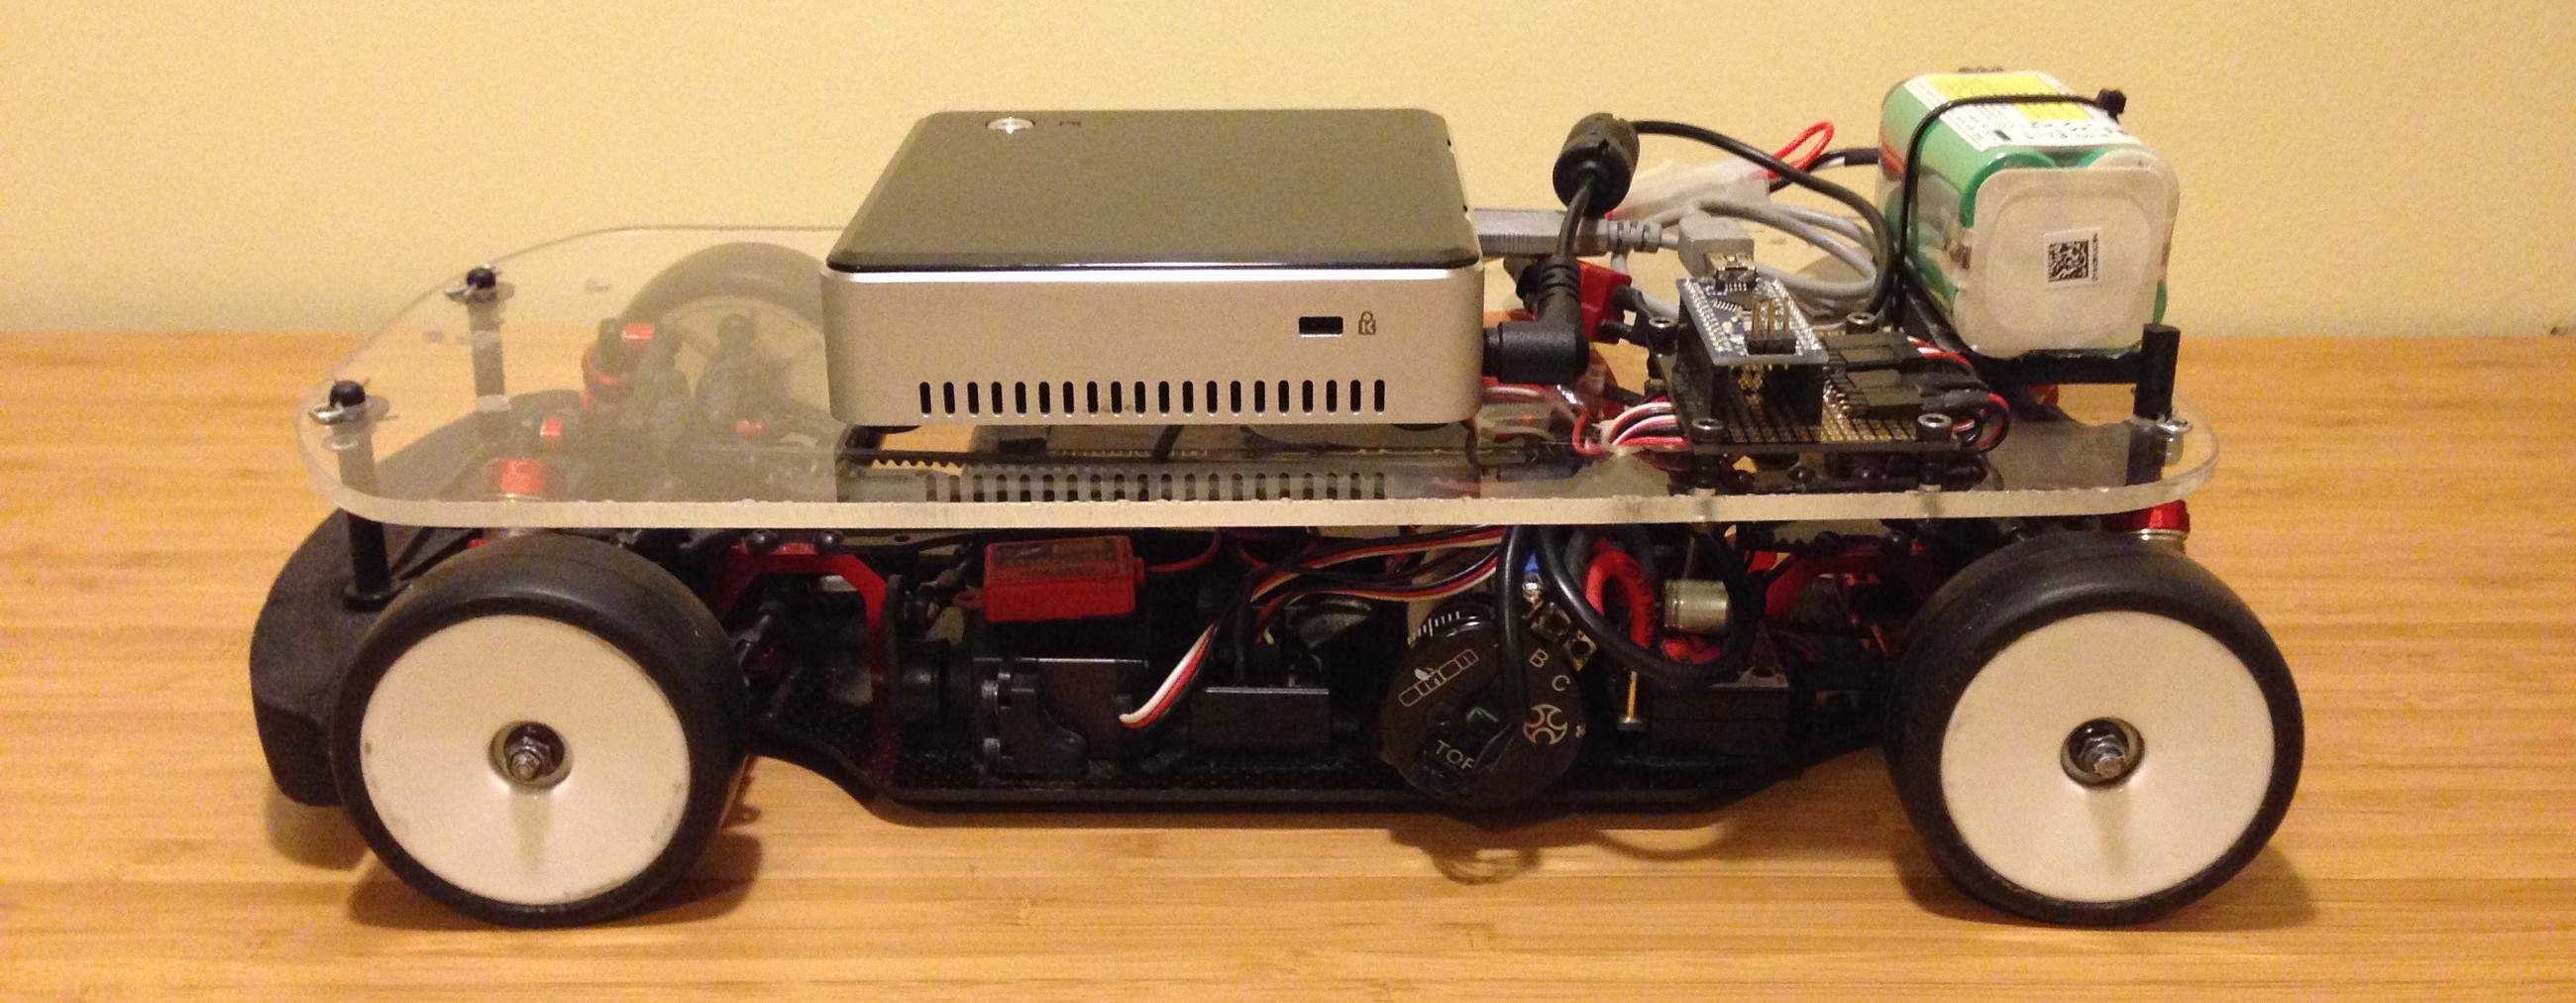 Ghost II — Controlling An RC Car With A Computer - By